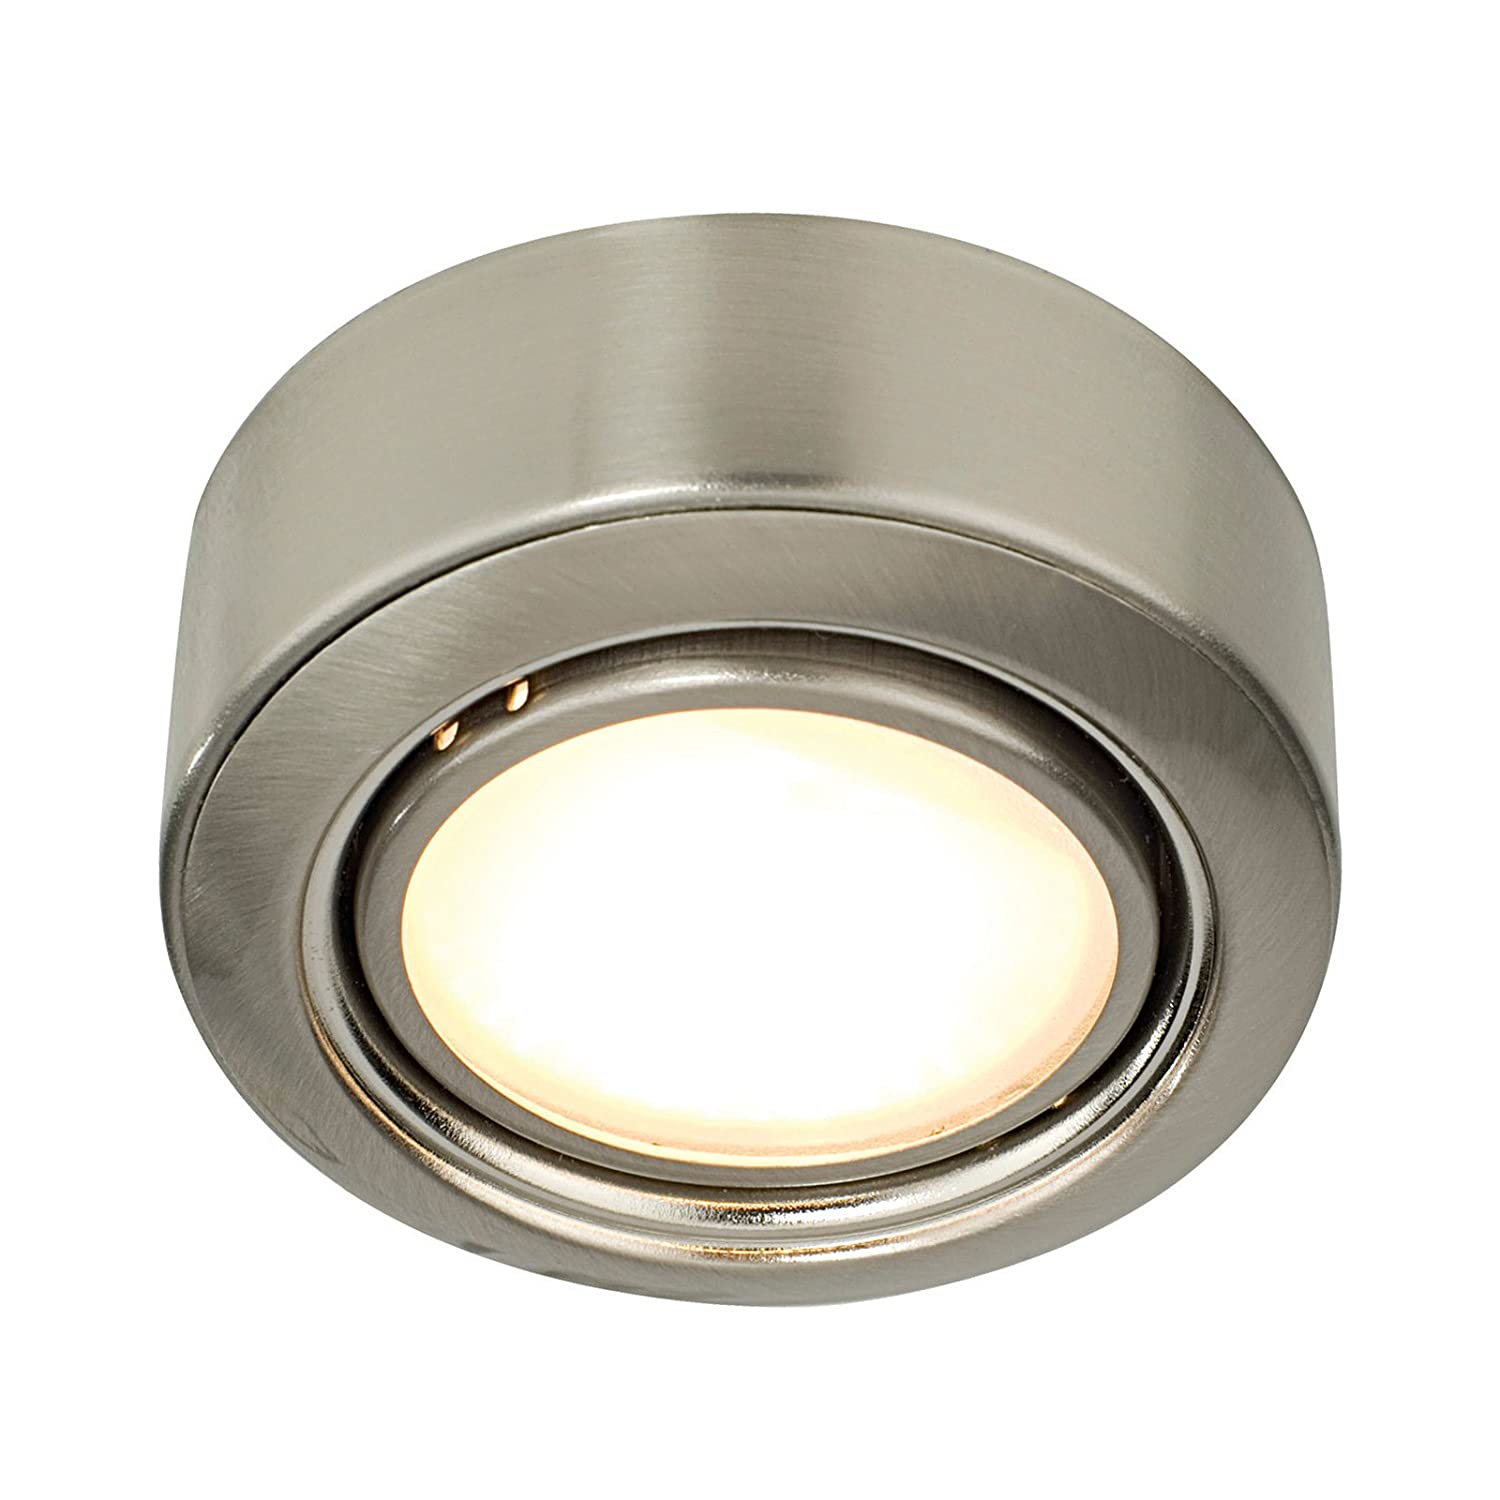 Firn Recessed Under Cabinet Light in Satin Nickel: Amazon.co.uk ...